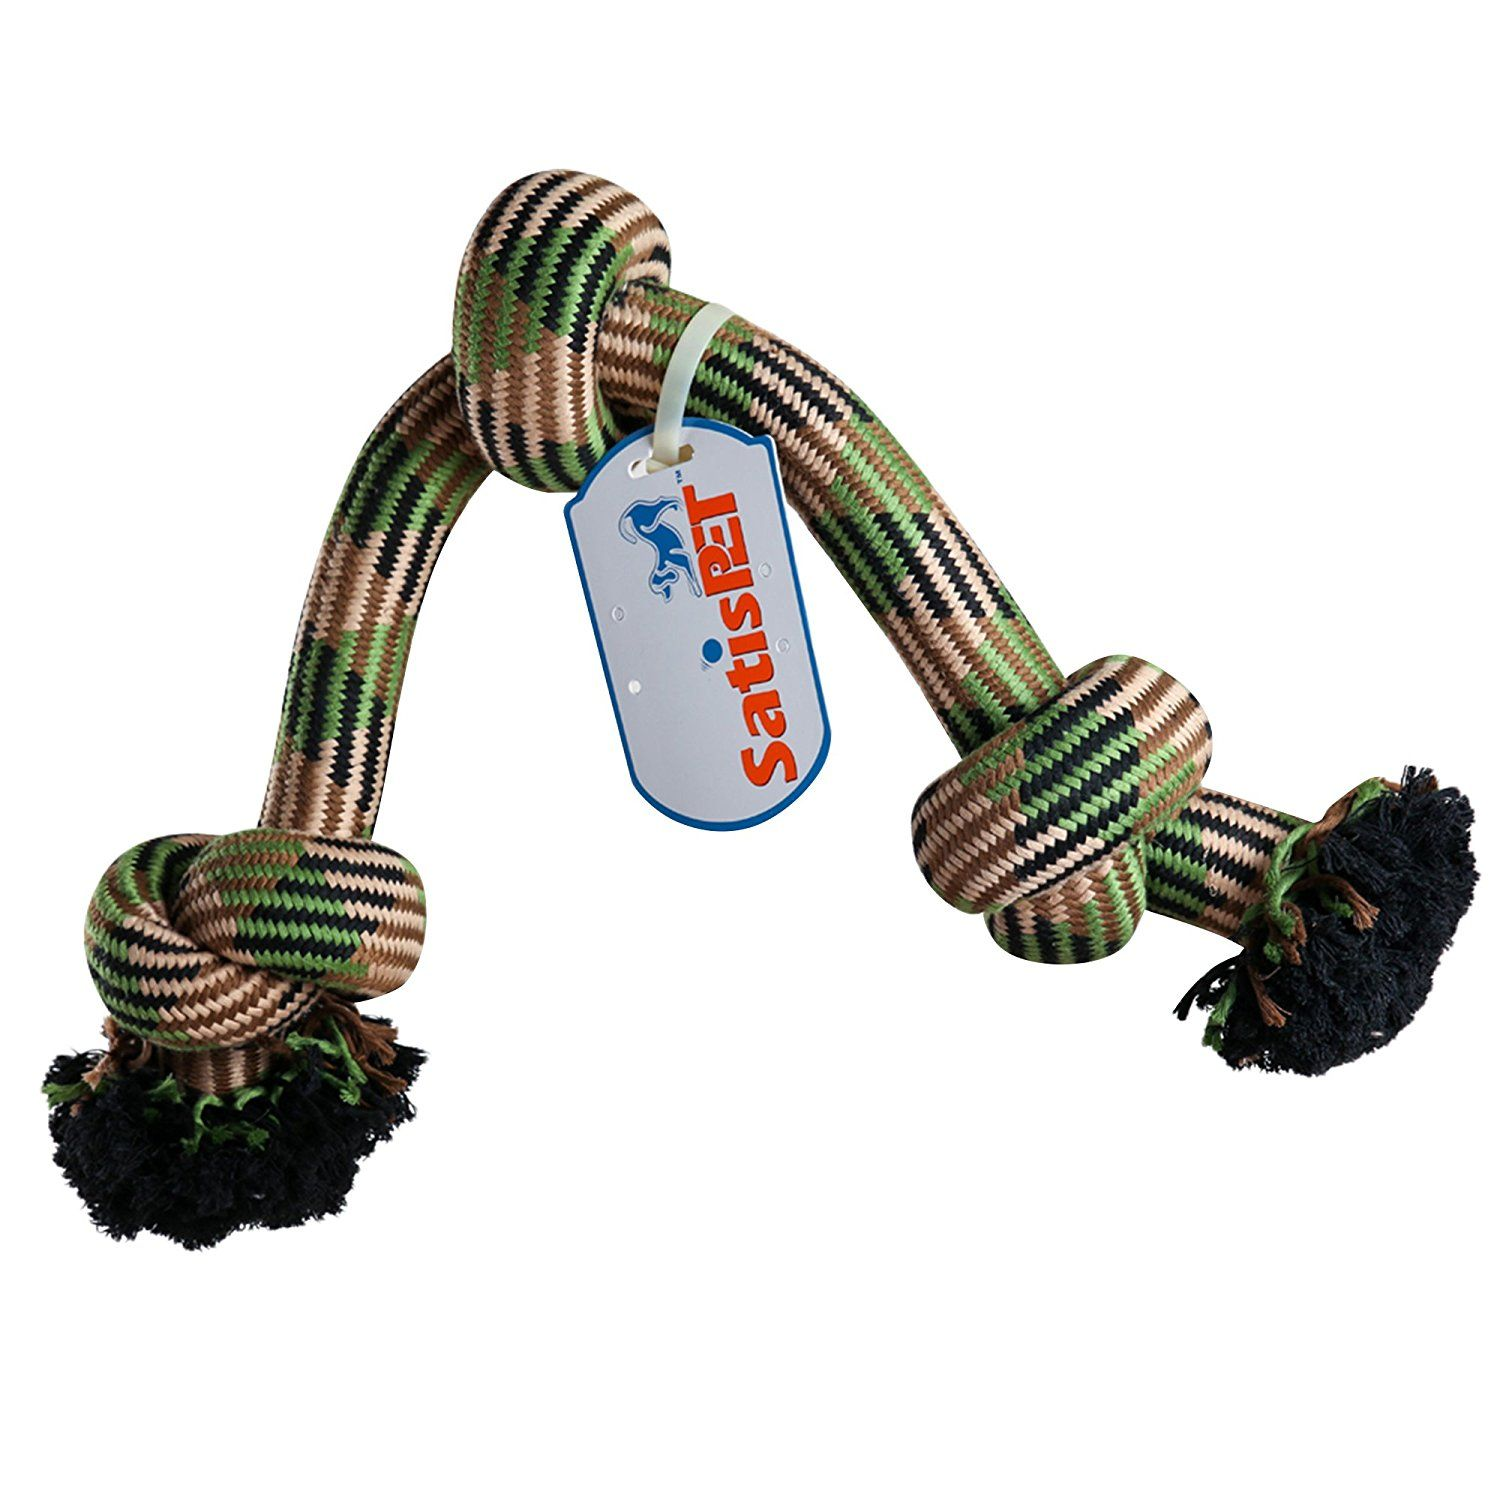 Satispet Large Dog Toys 31 Inch 5lbs No 1 Jumbo Durable Chew Rope